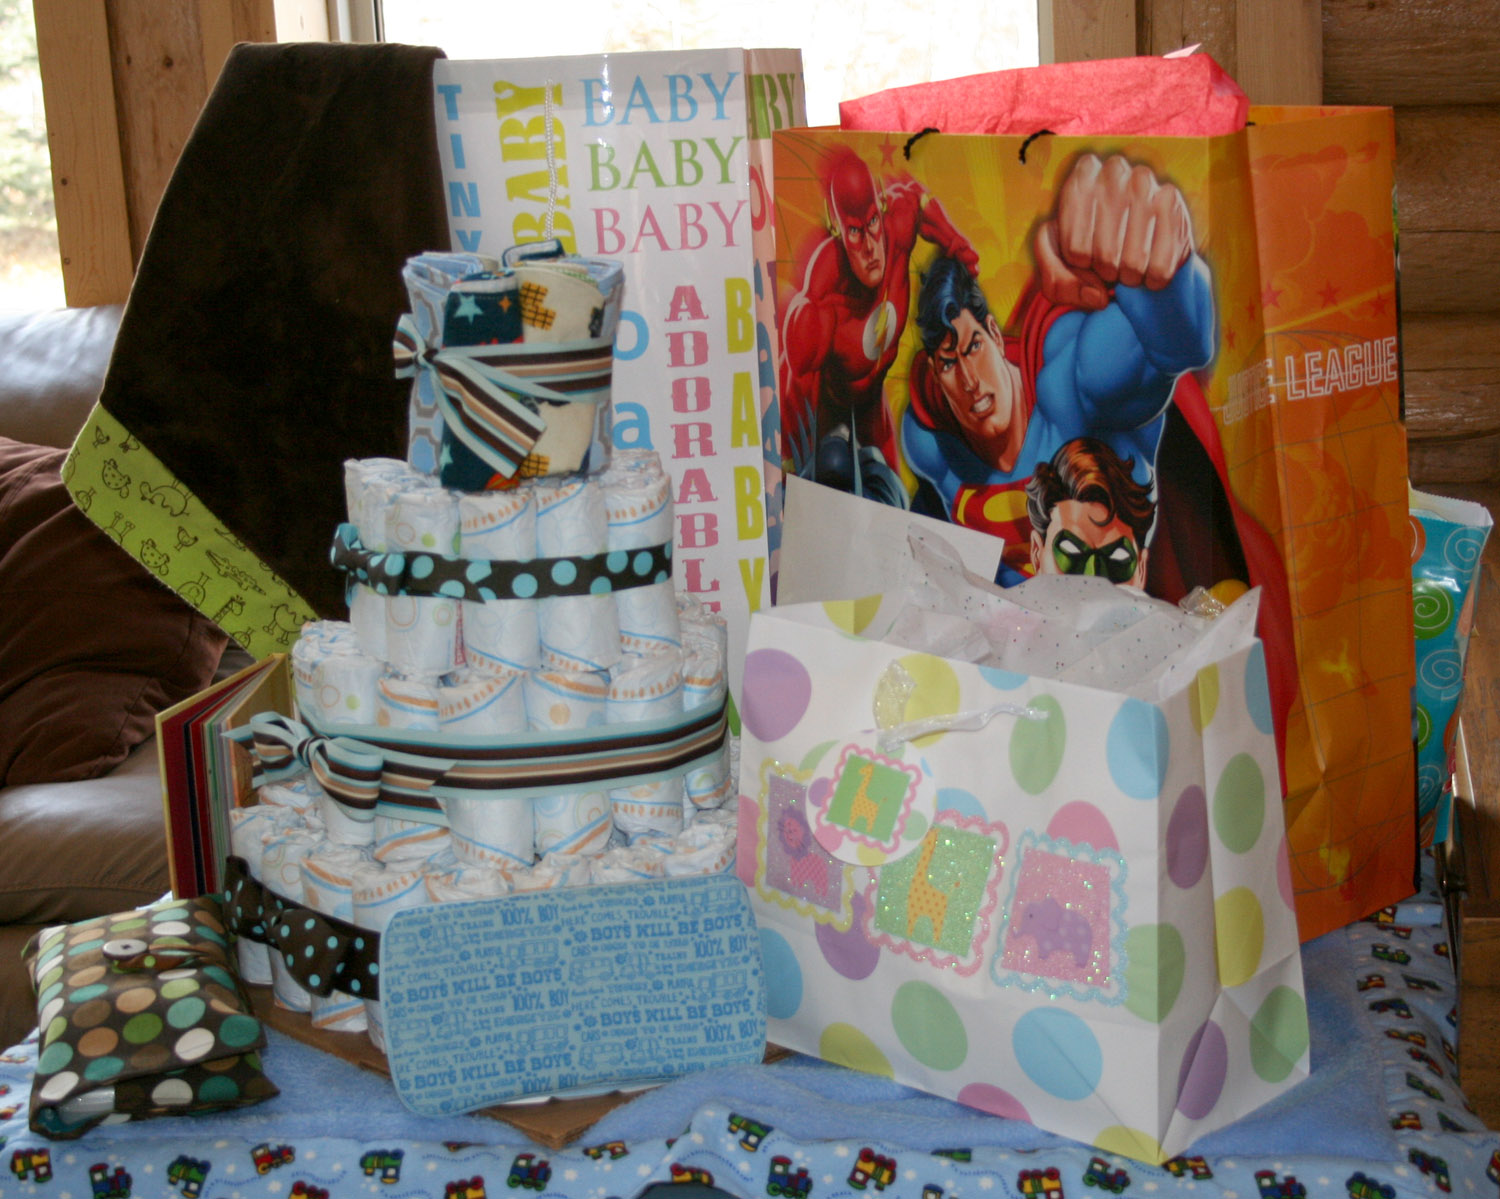 Capital b conner jodies baby shower conner jodies baby shower negle Gallery